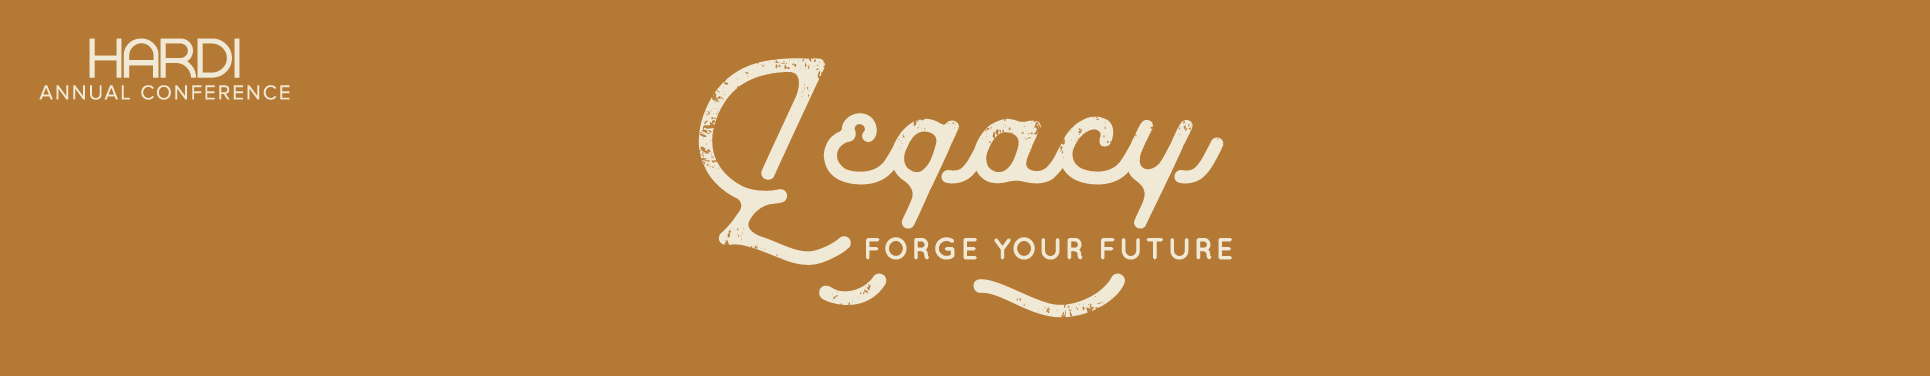 HARDI Annual Conference: Legacy 2018